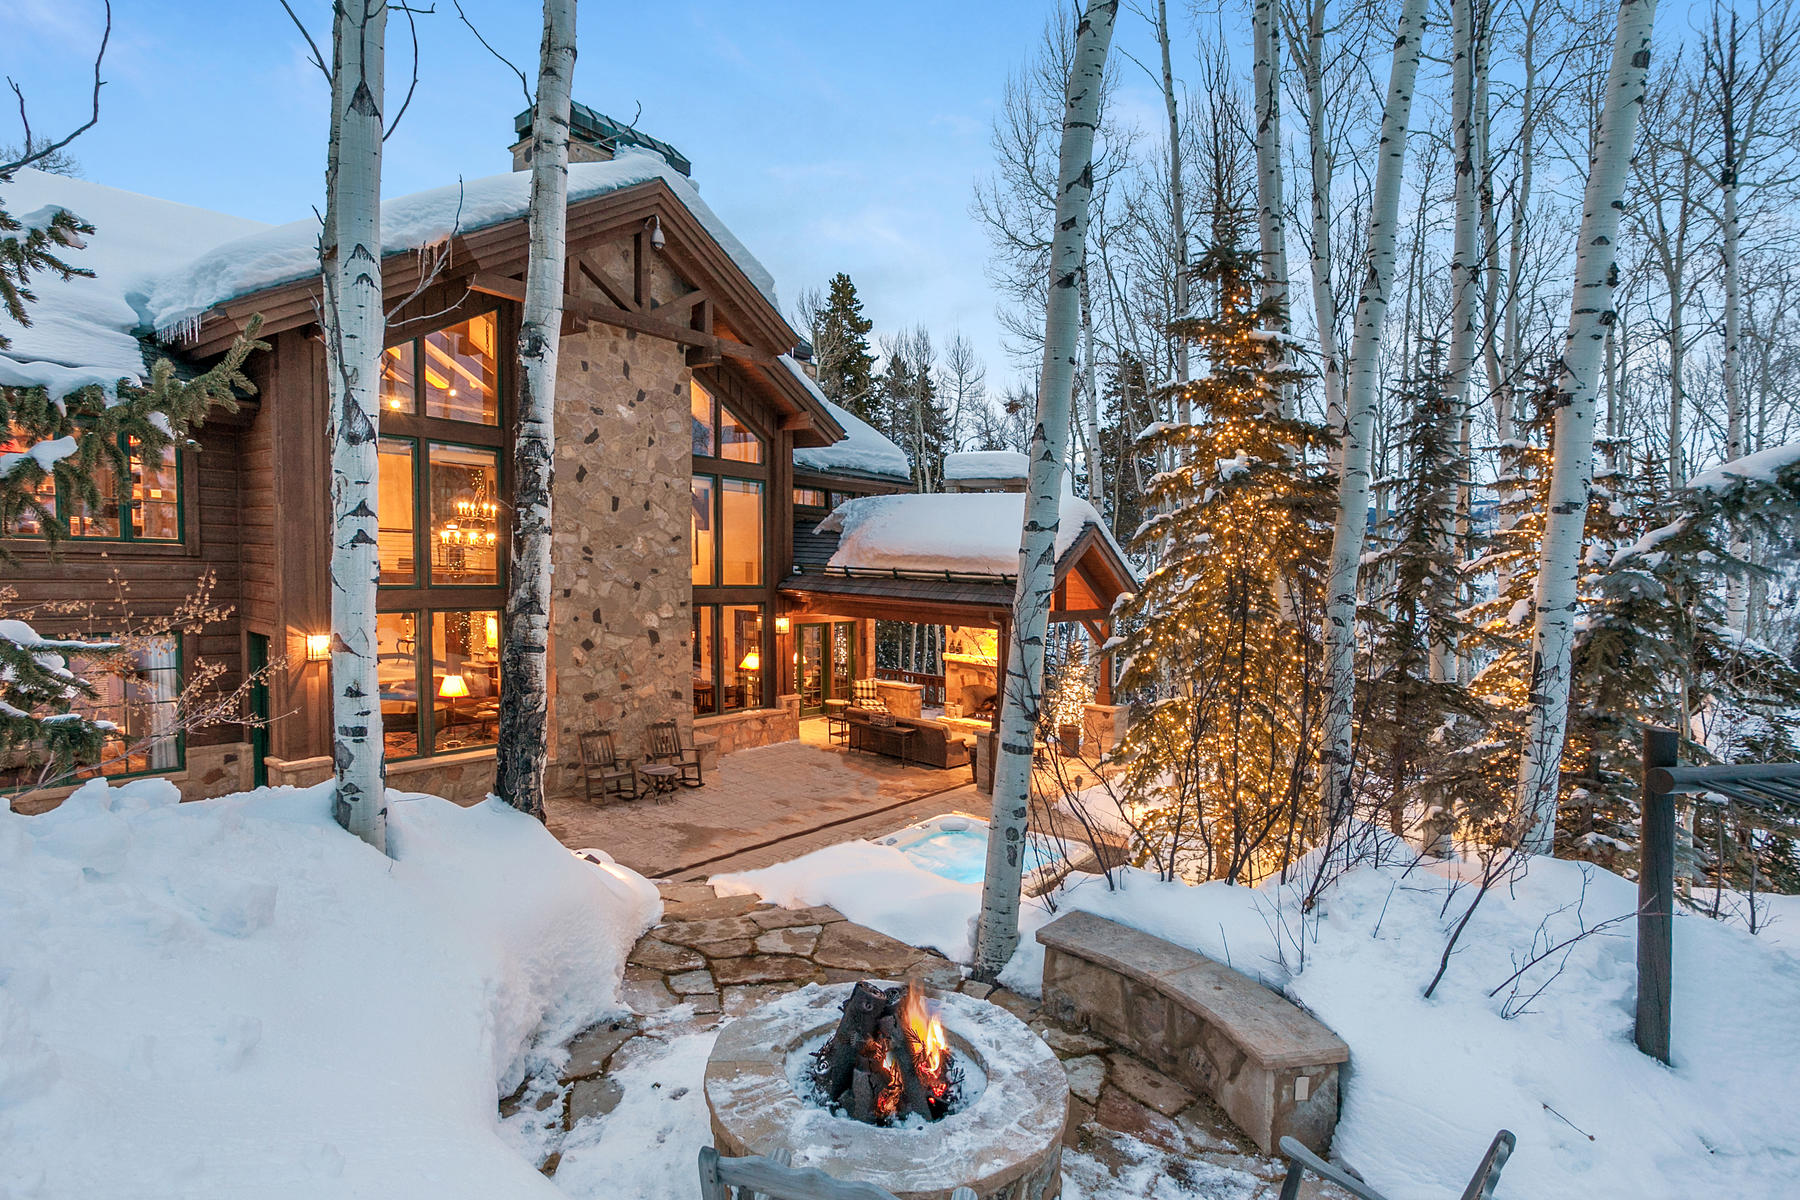 Single Family Home for Active at Strawberry Park Ski Lodge 373 Strawberry Park Beaver Creek, Colorado 81620 United States